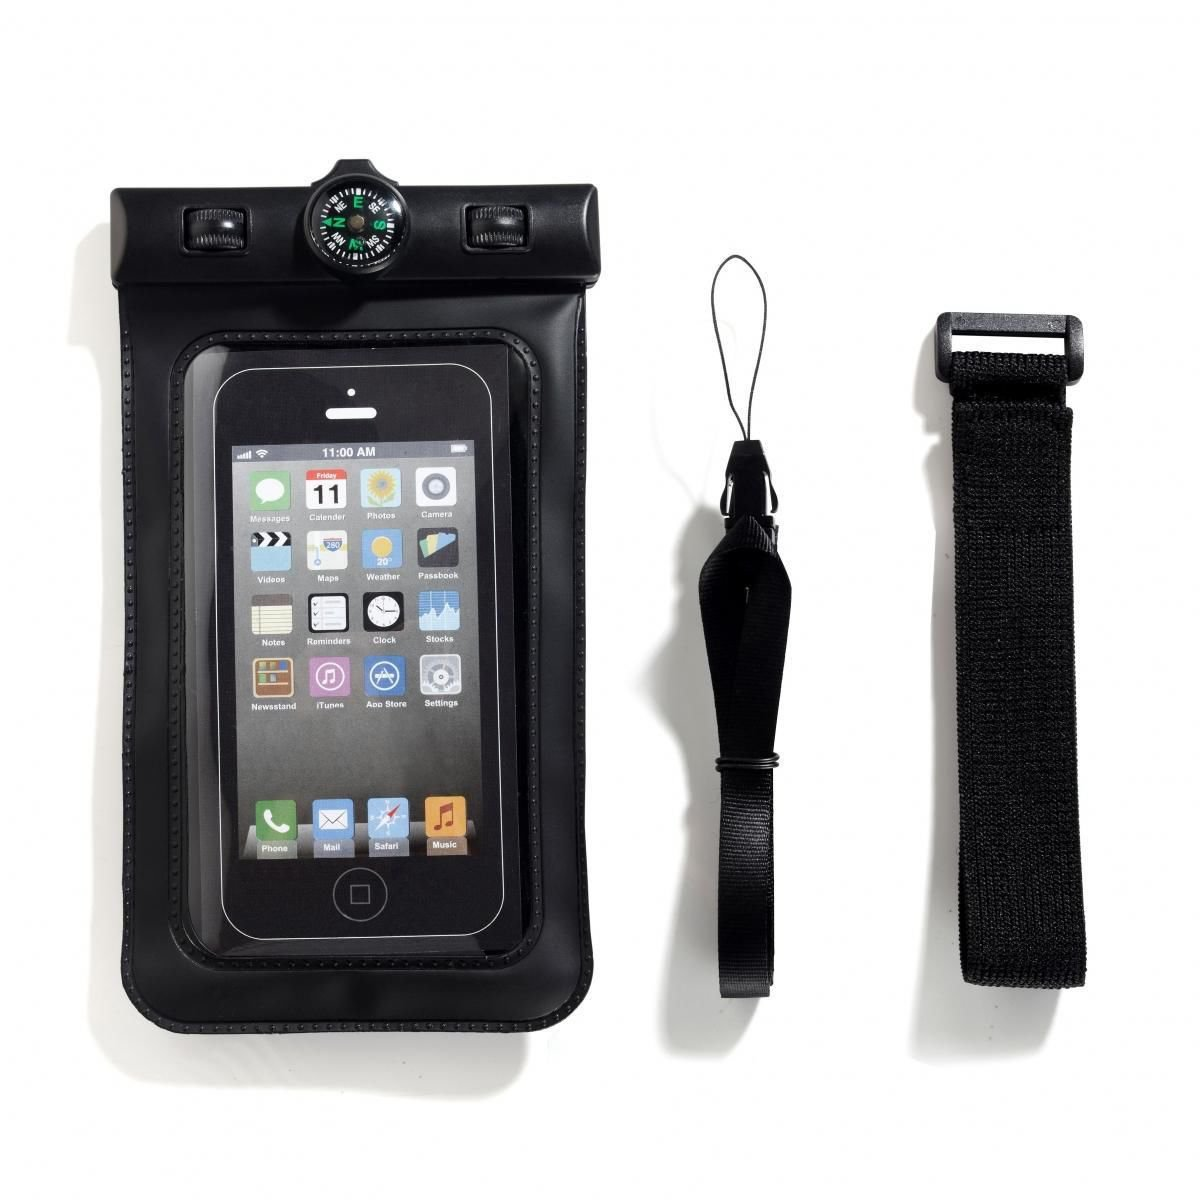 Universal Waterproof Case Bag Cover For iPhone6, 5,SAMSUNG GALAXY S4 I9500 S3 S5